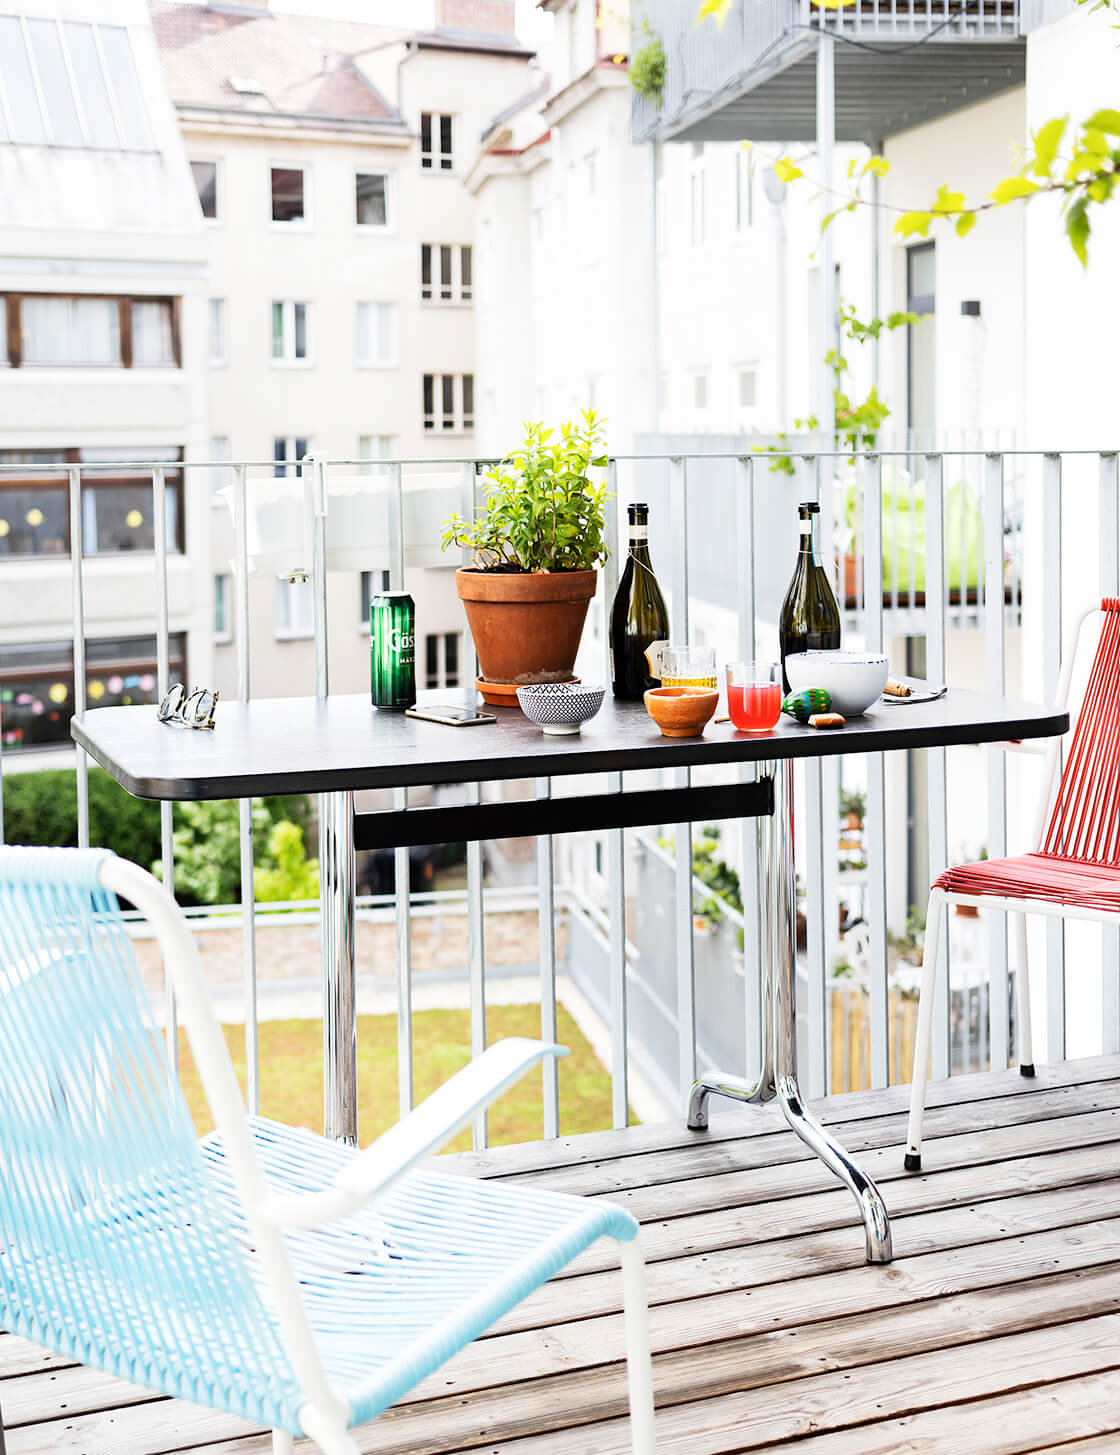 indiangoodsco_blog_design_inspiration_hometour_vienna_claudiarockstroh_carlosperez_historic apartment_whitefloors_art_balcony11